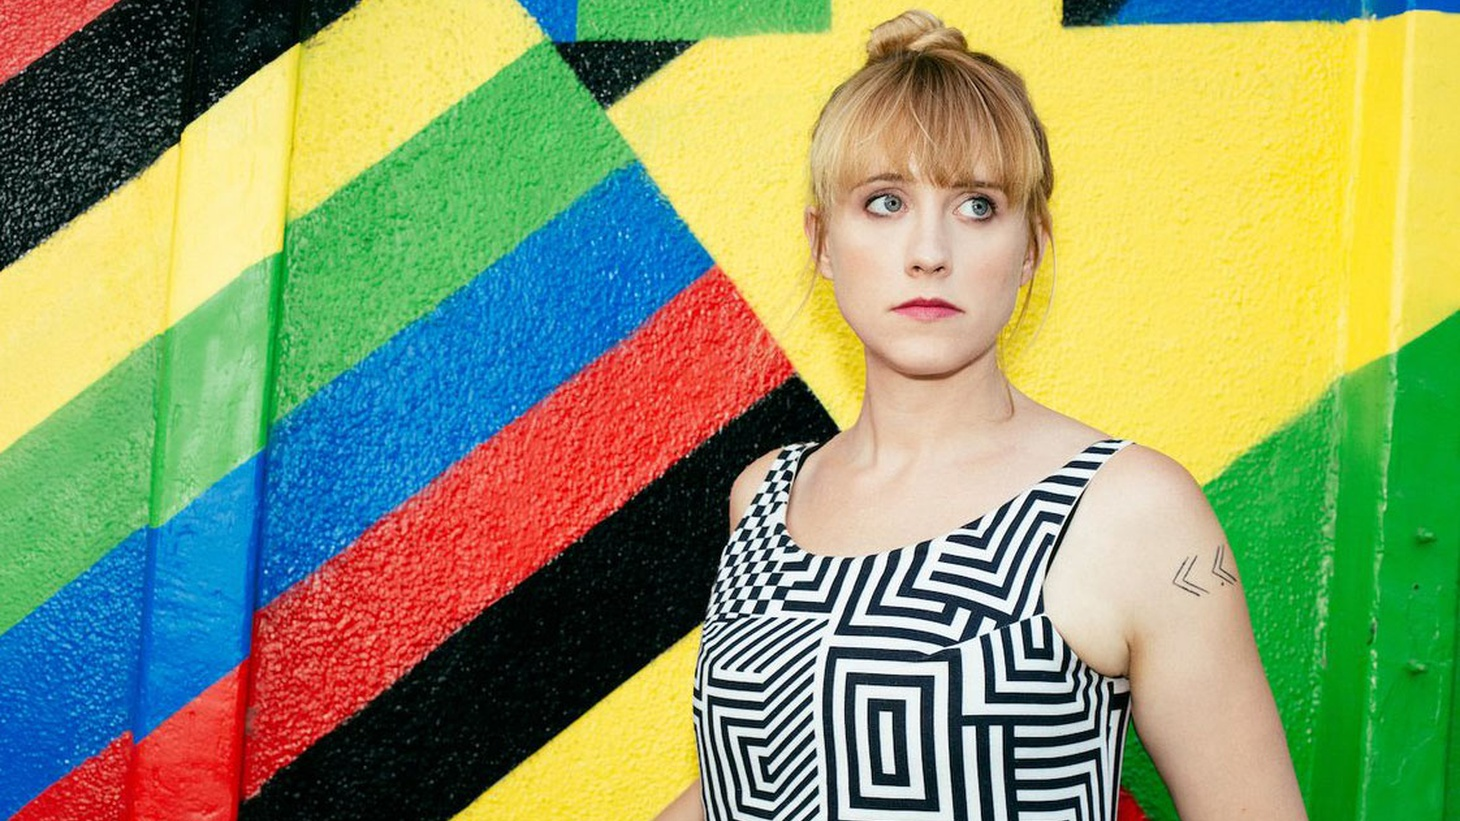 Jenn Wesner is the talented songwriter and vocalist of the popular duo Wye Oak. She has just released her solo debut full-length which she wrote, performed and self-produced.